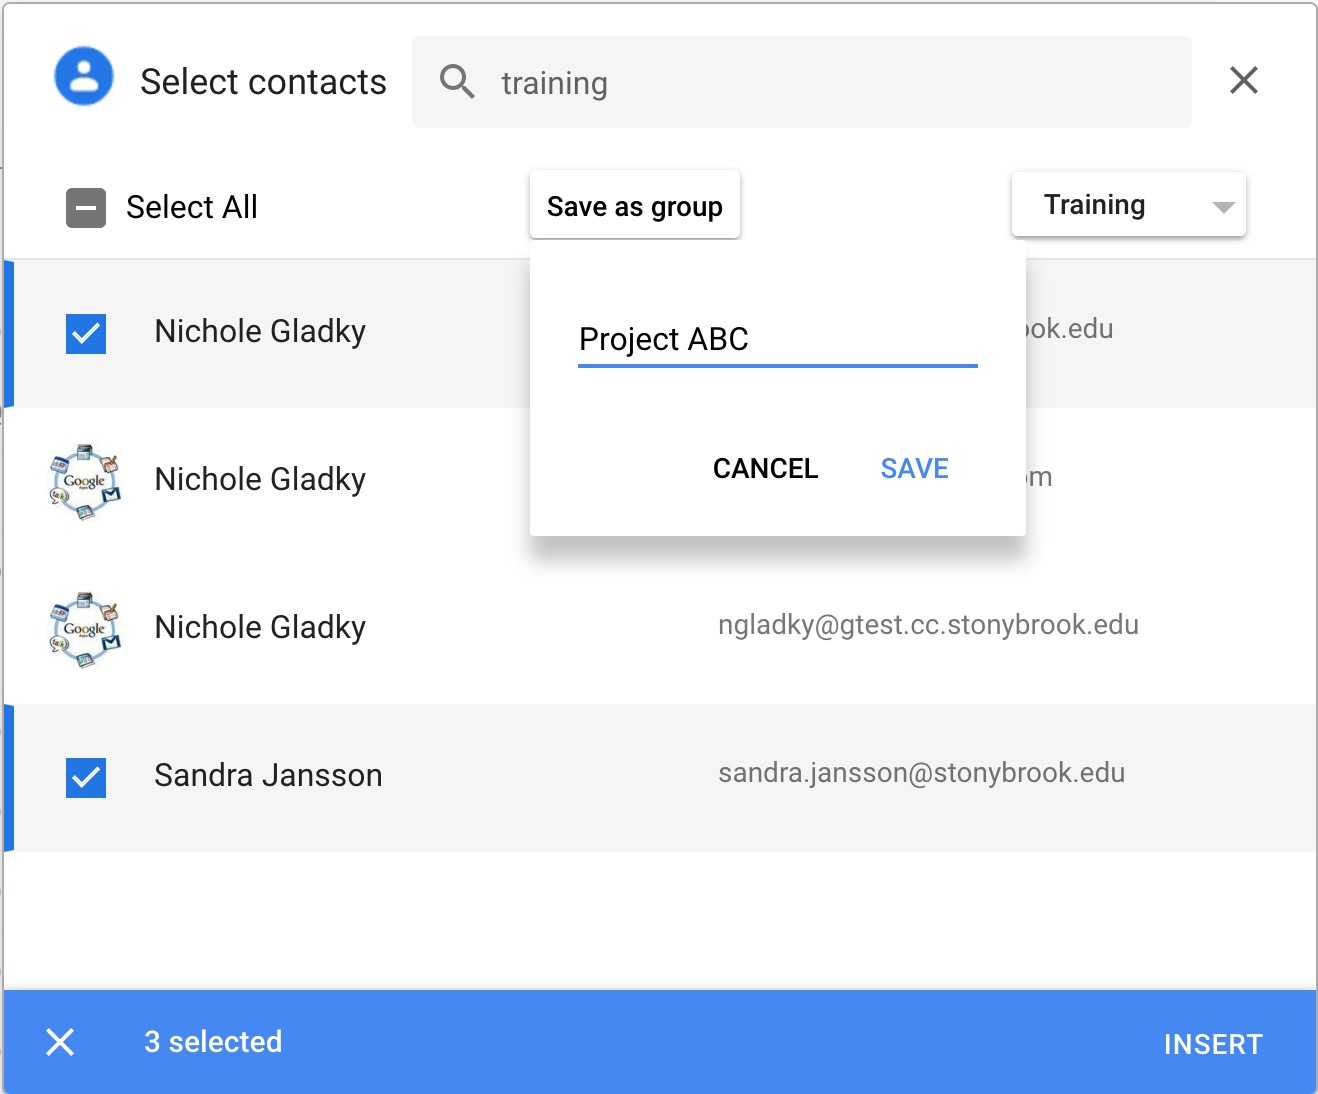 contact picker with contacts selected and new group Project ABC being created